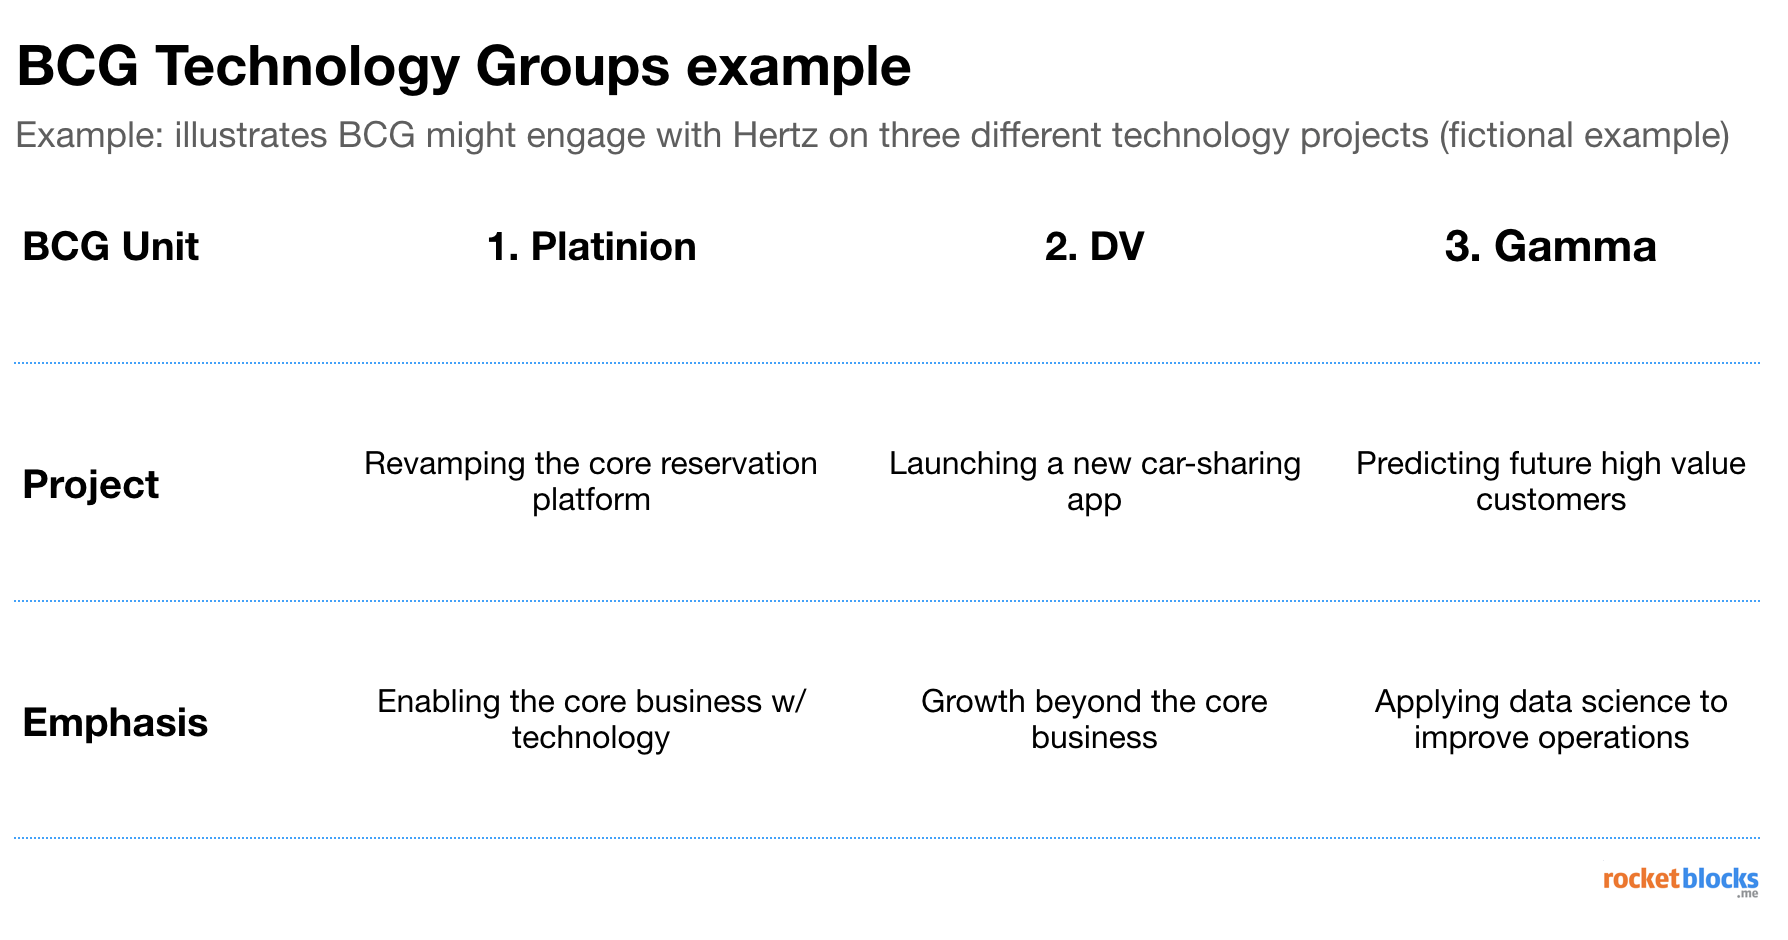 Comparison of projects that different BCG groups, like Platinion, DV and Gamma take on